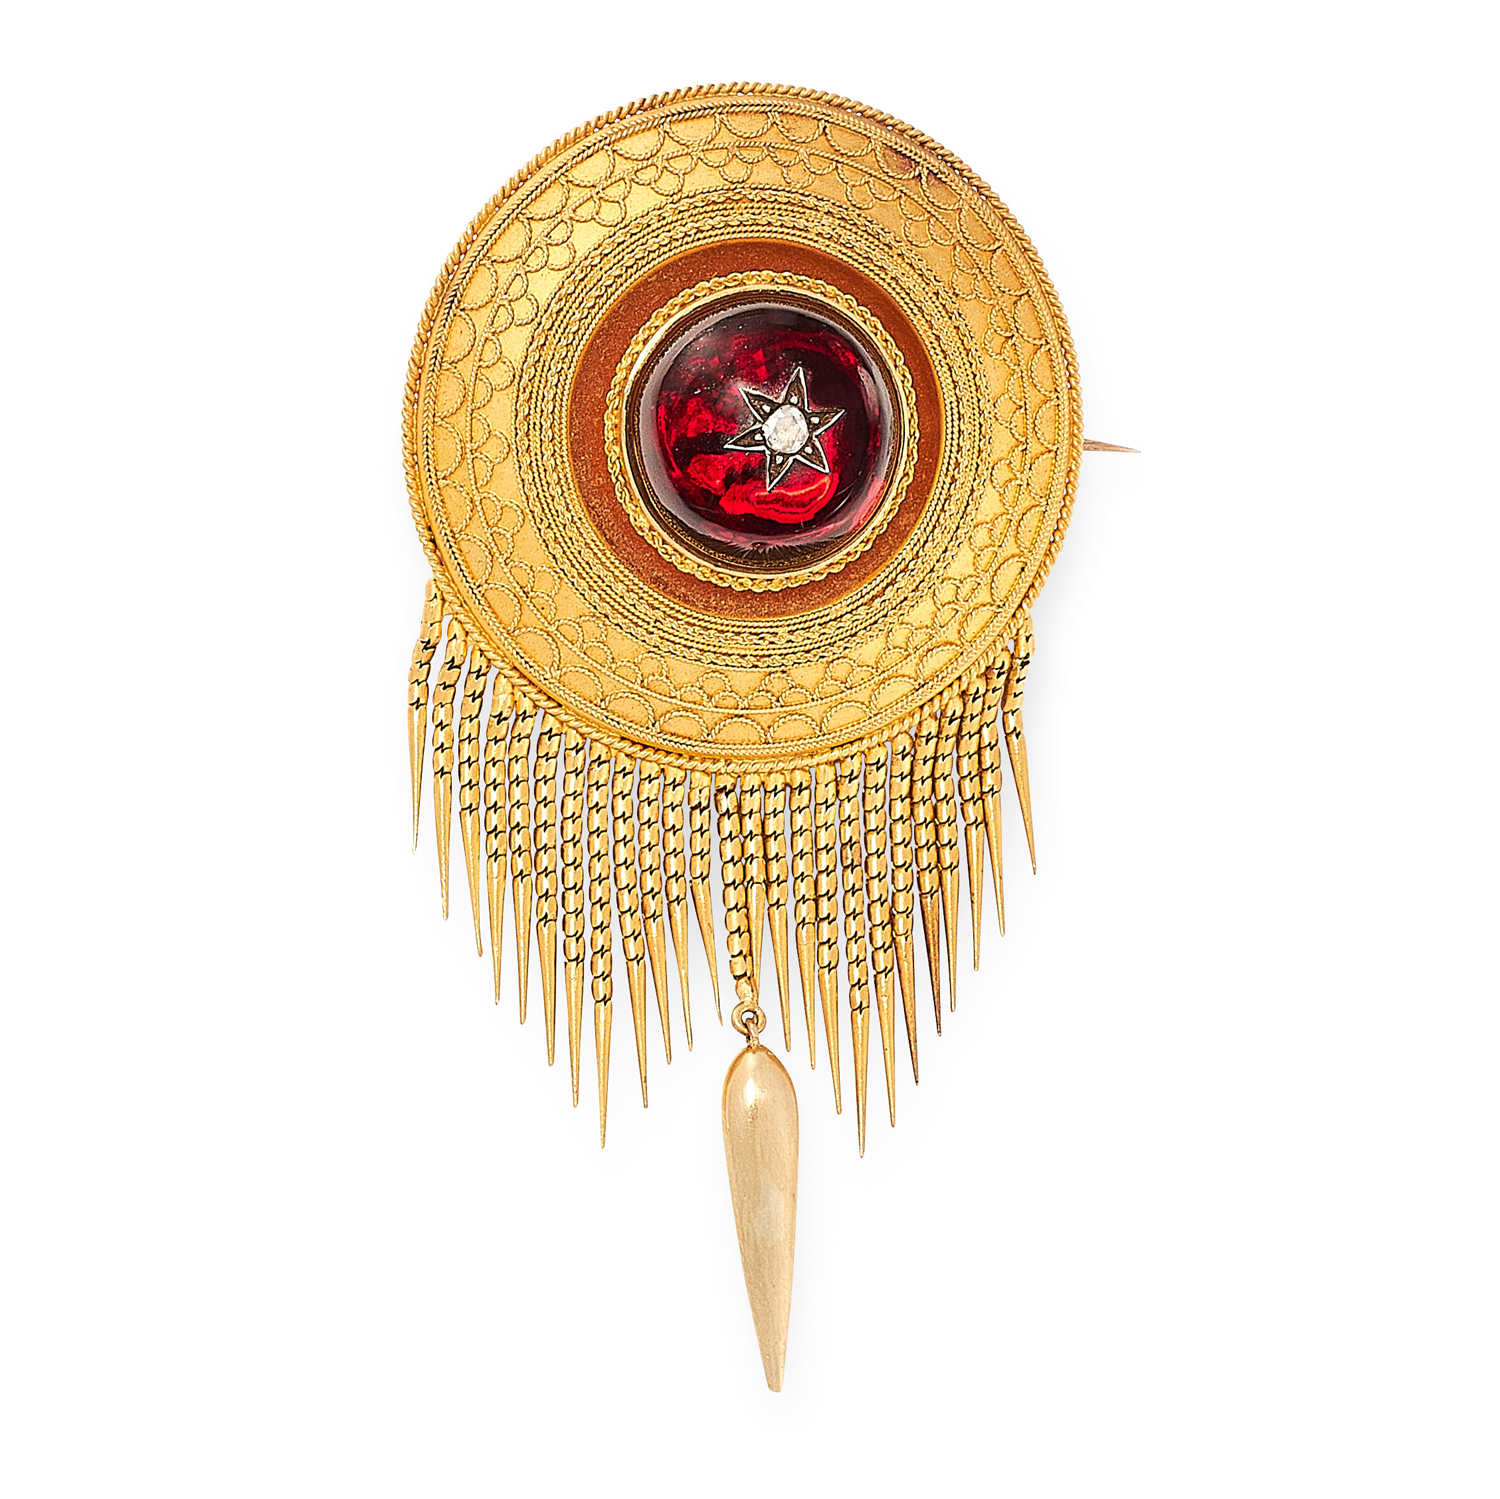 AN ANTIQUE GARNET AND DIAMOND MOURNING TASSEL BROOCH, 19TH CENTURY in high carat yellow gold, in the